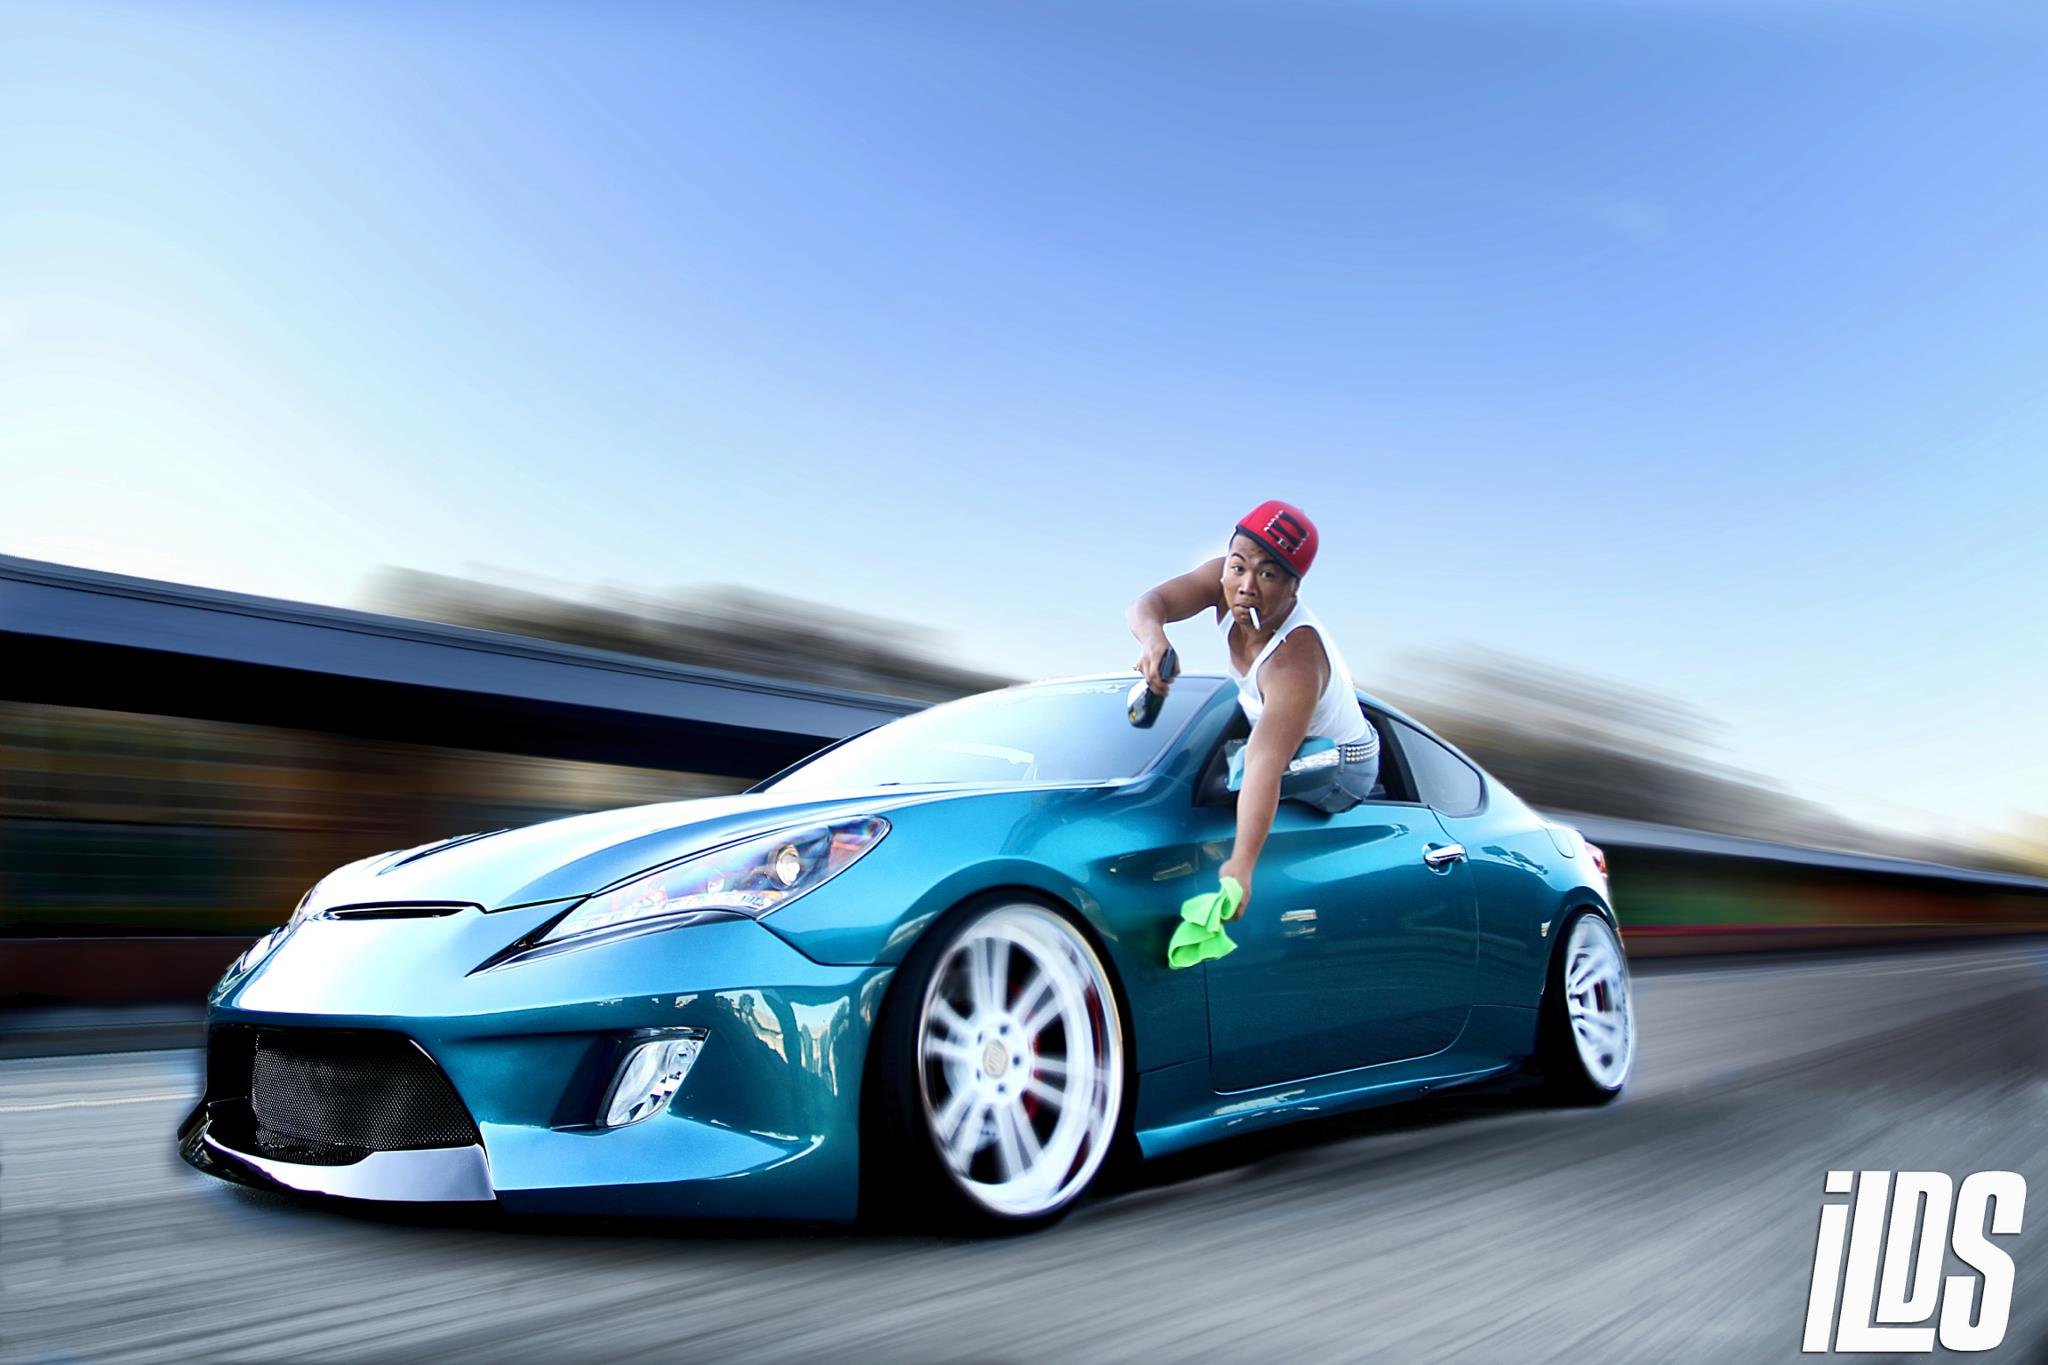 custom offset hyundai wheel bagged parts flush genesis gallery gmr other coupe